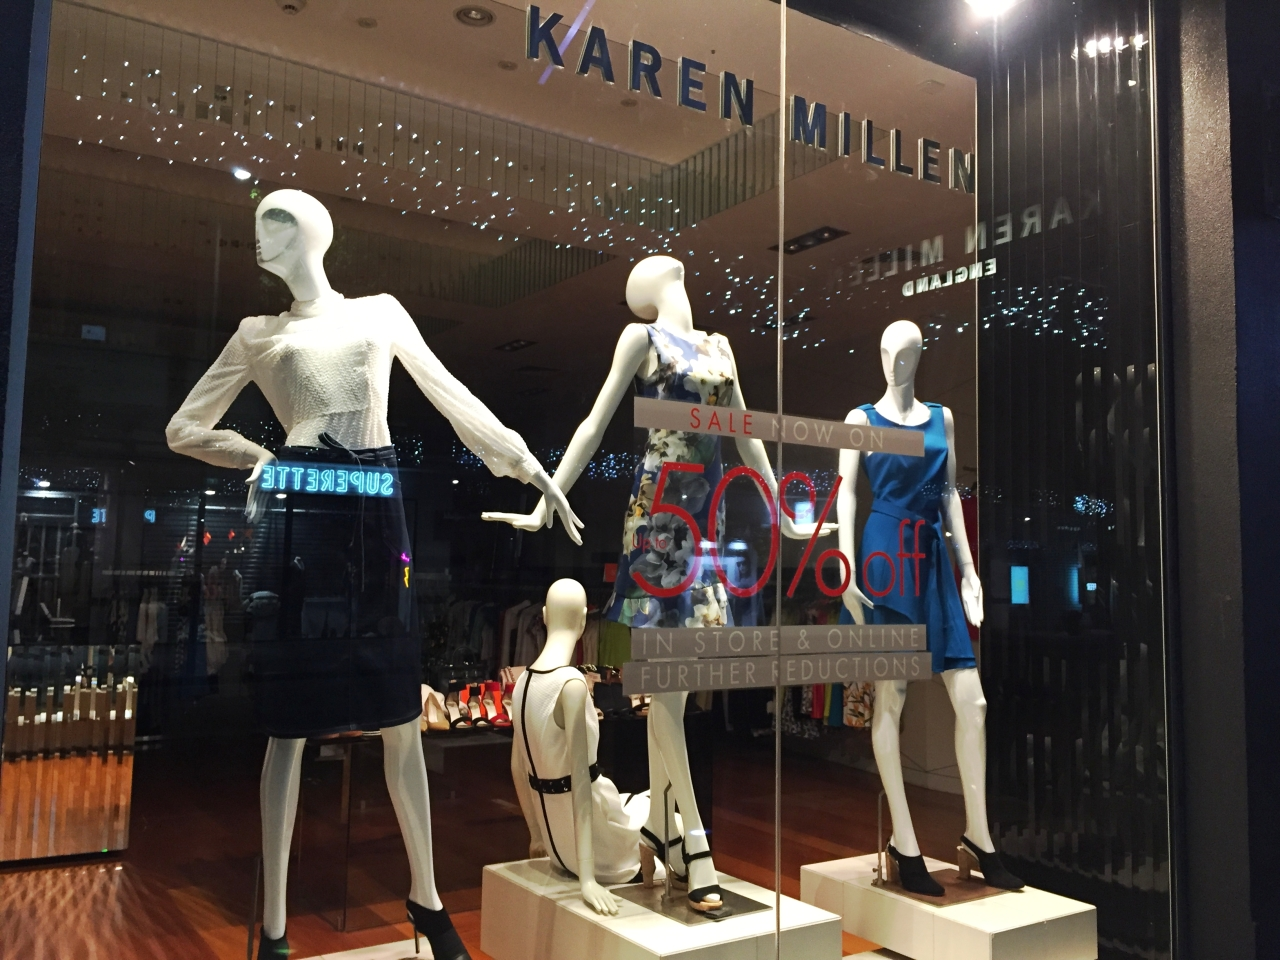 WINDOW SHOPPING – #Auckland | Newmarket Nuffield street – January 2017-Karen Milen -photographer @KevinJamesNg